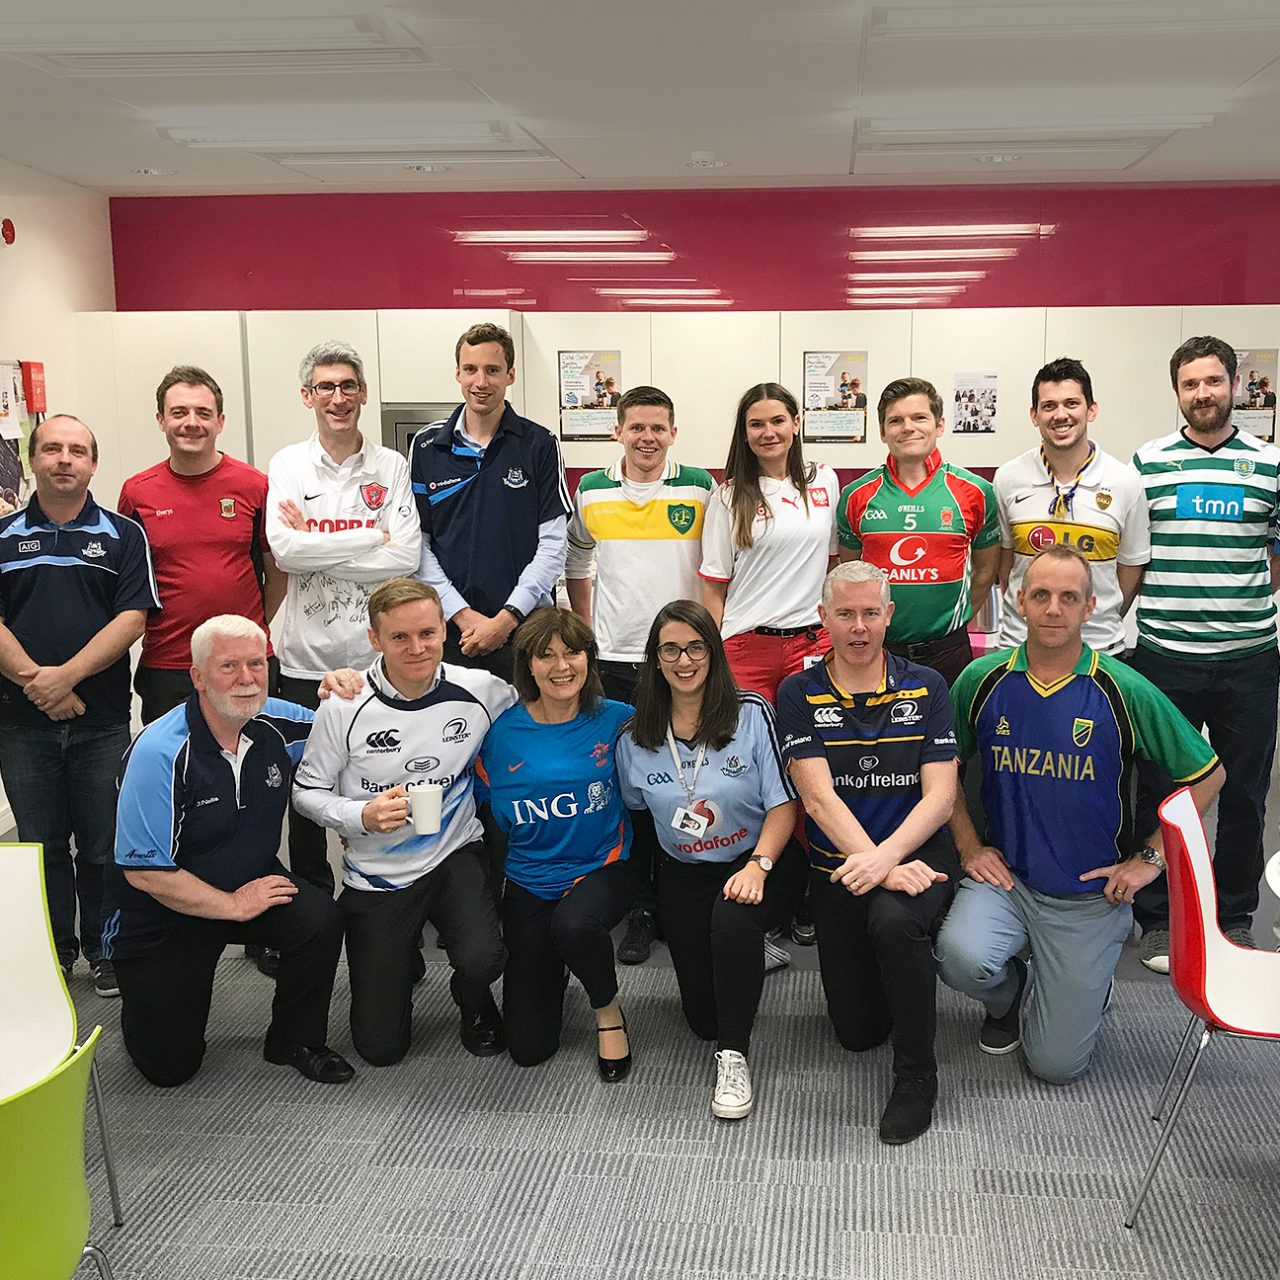 Dublin staff wear their favourite sporting jersey to win the most devoted fan and support local homeless people